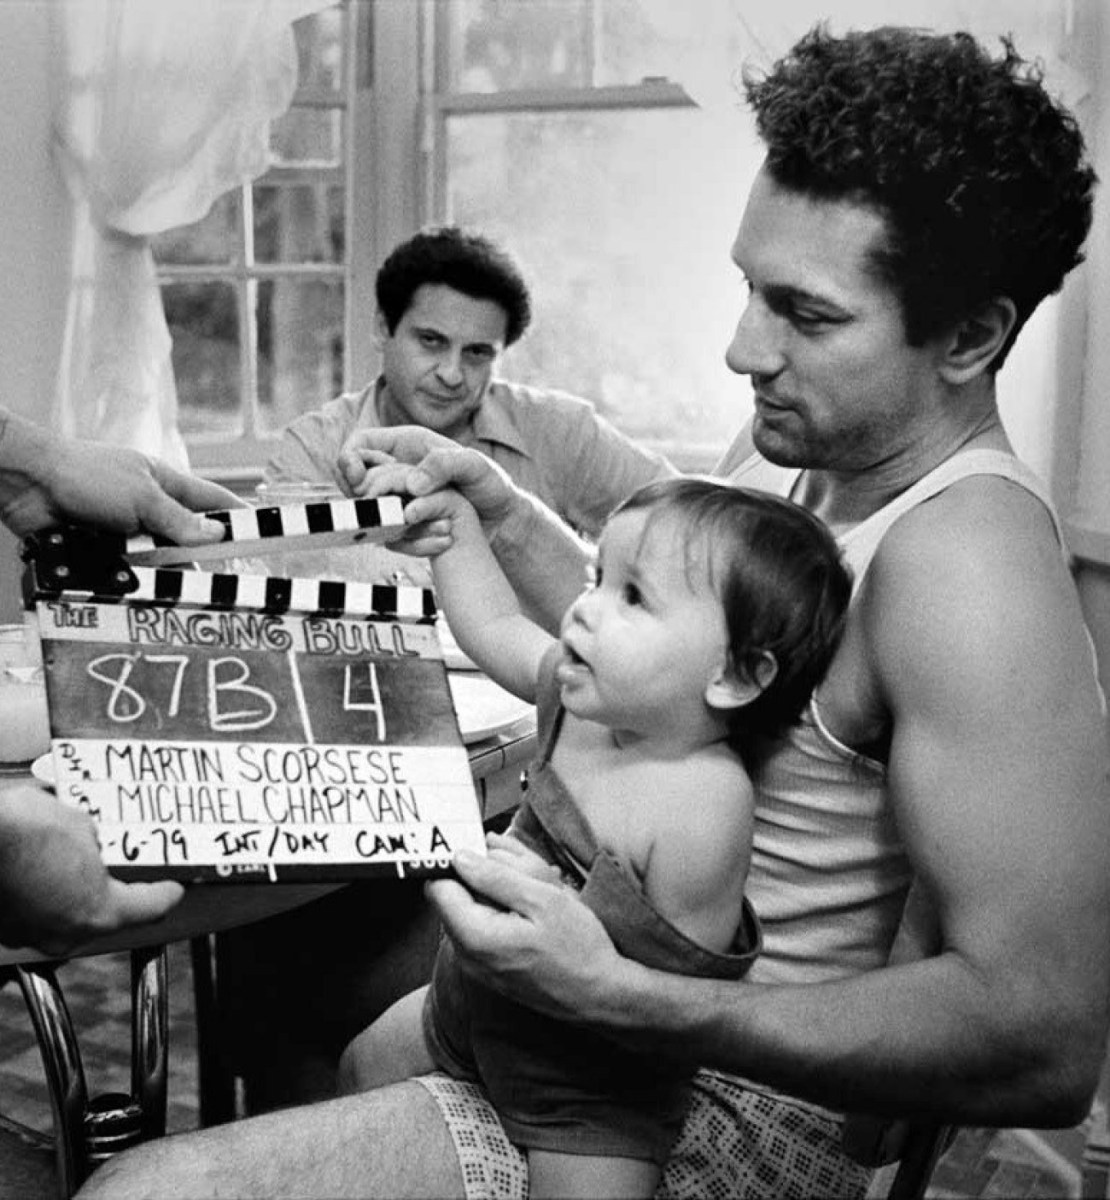 Robert De Niro : Raging Bull (1980) Behind the Scenes